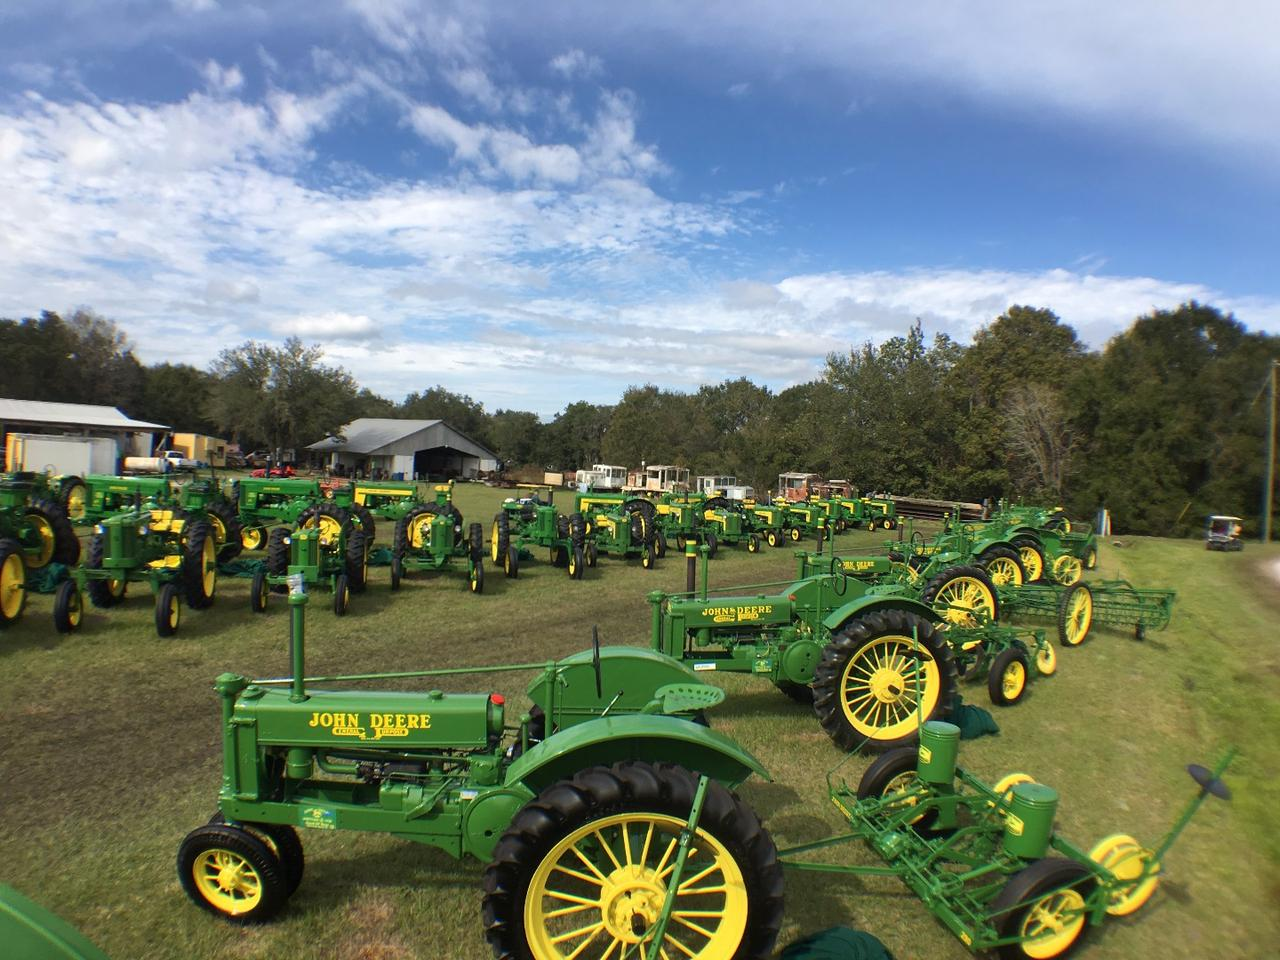 John Deere Heaven: This huge private collection of beautifully restored John Deere tractors belongs to Good Ol' Boys Antique Tractors and Farm Implements in West Palm Beach, FL.